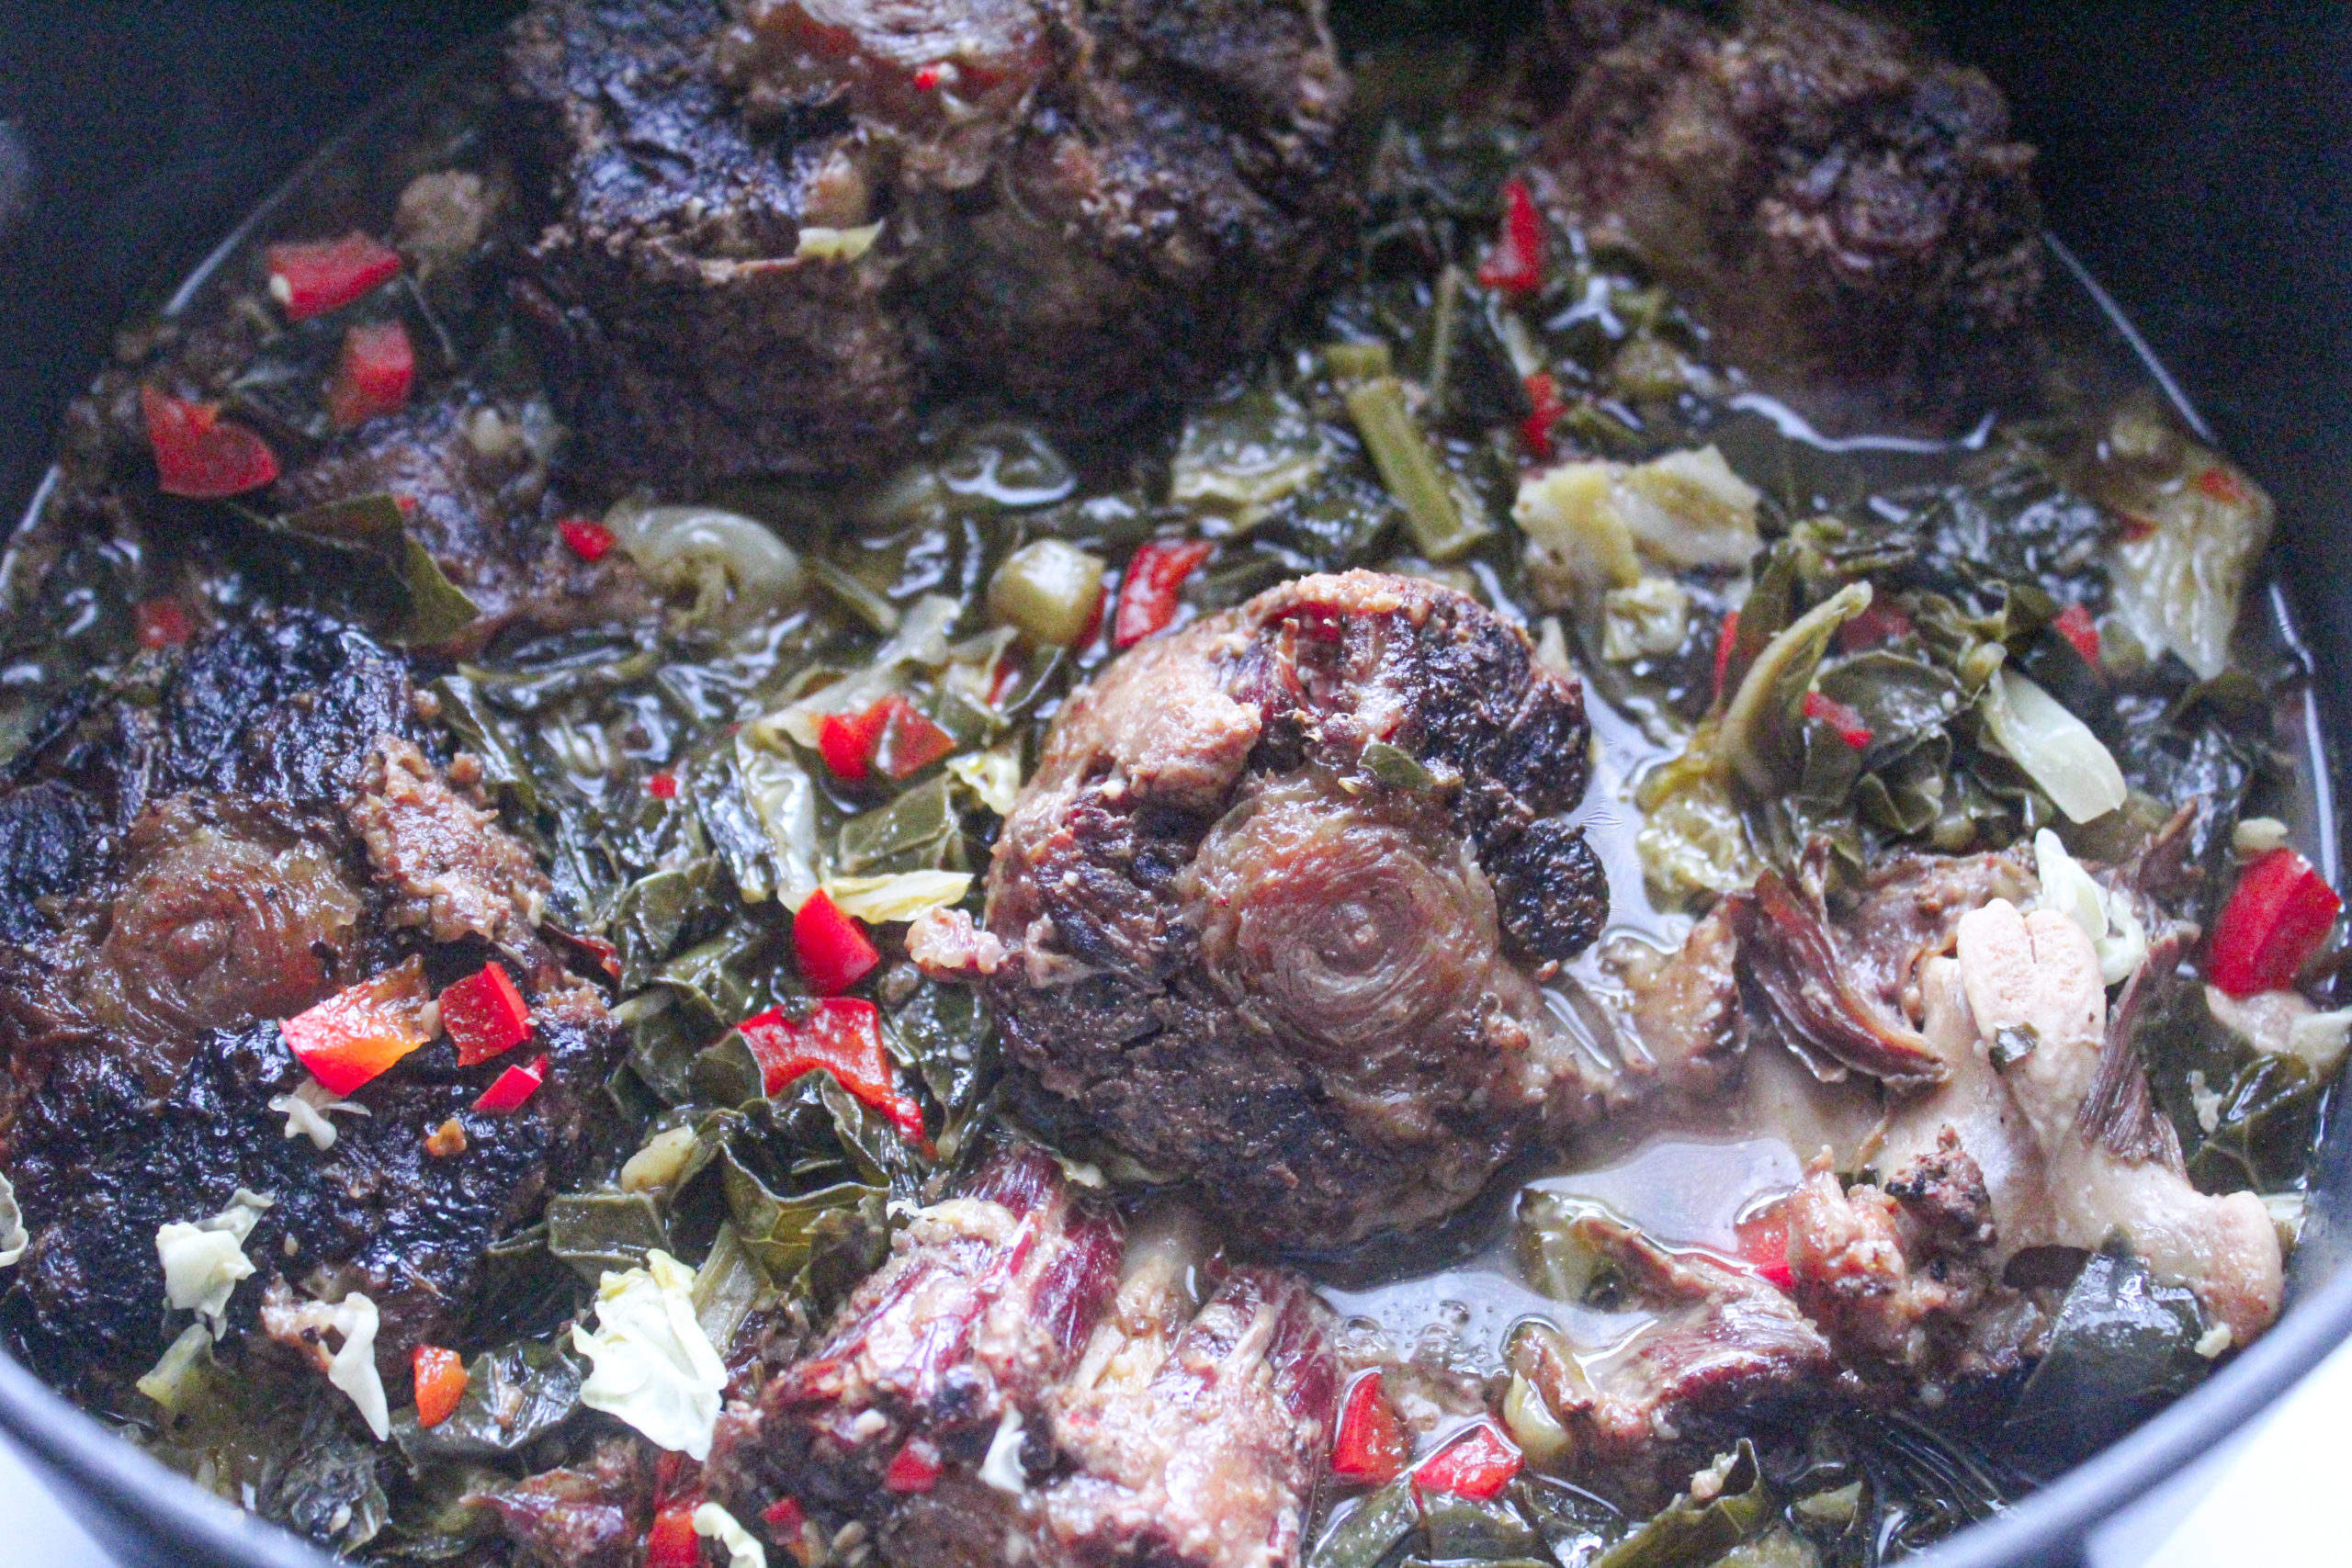 Smoked ox tails with collard greens